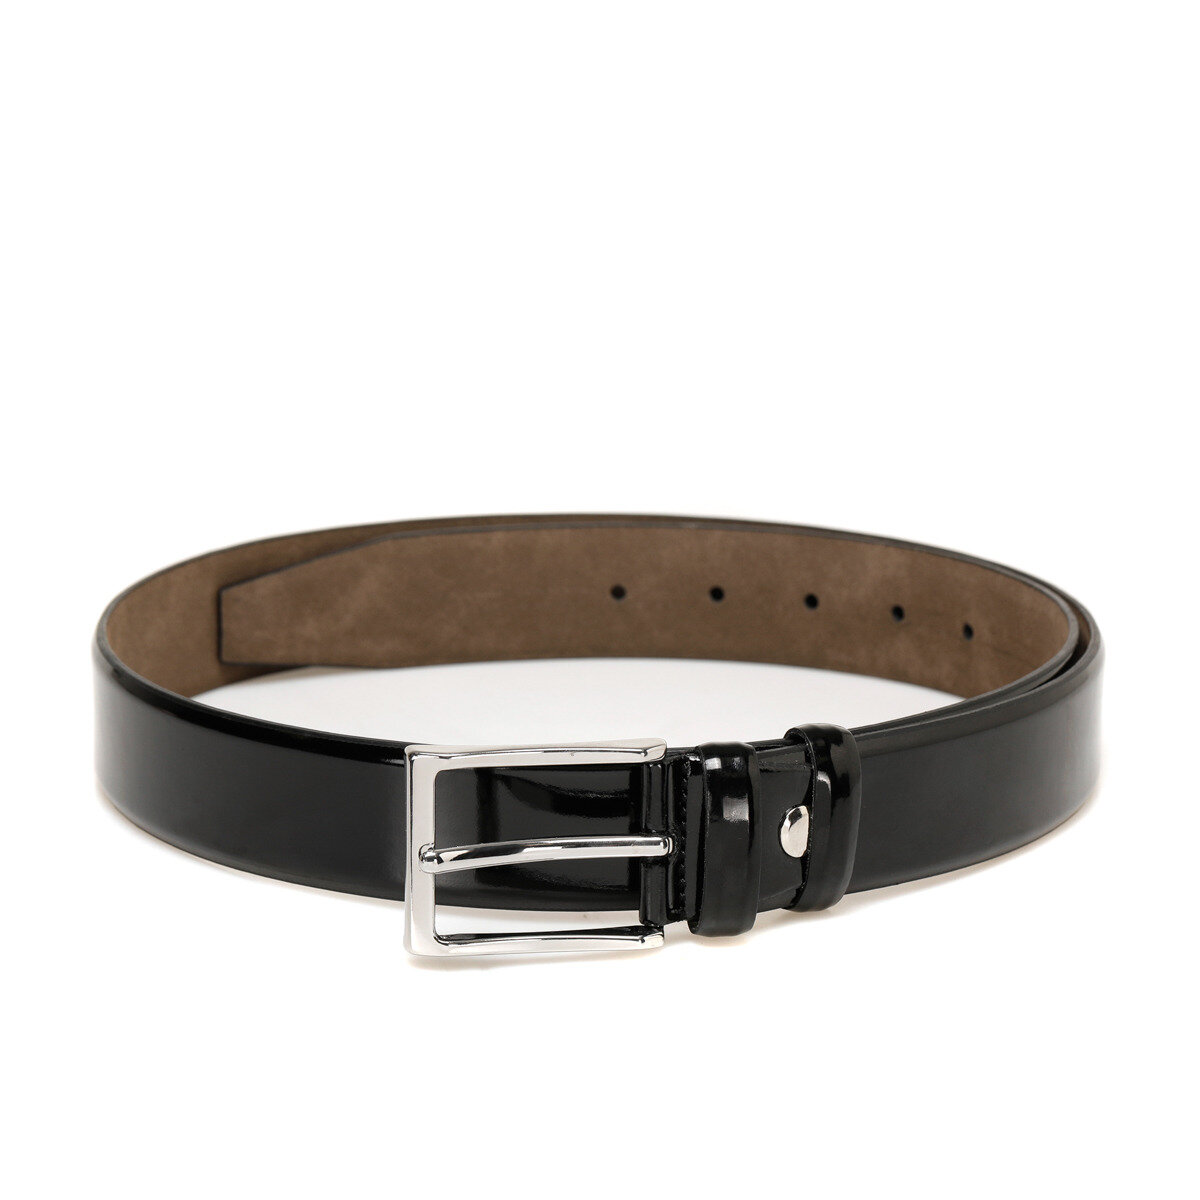 FLO 20M BR RGN 03 Black Male Belt Garamond